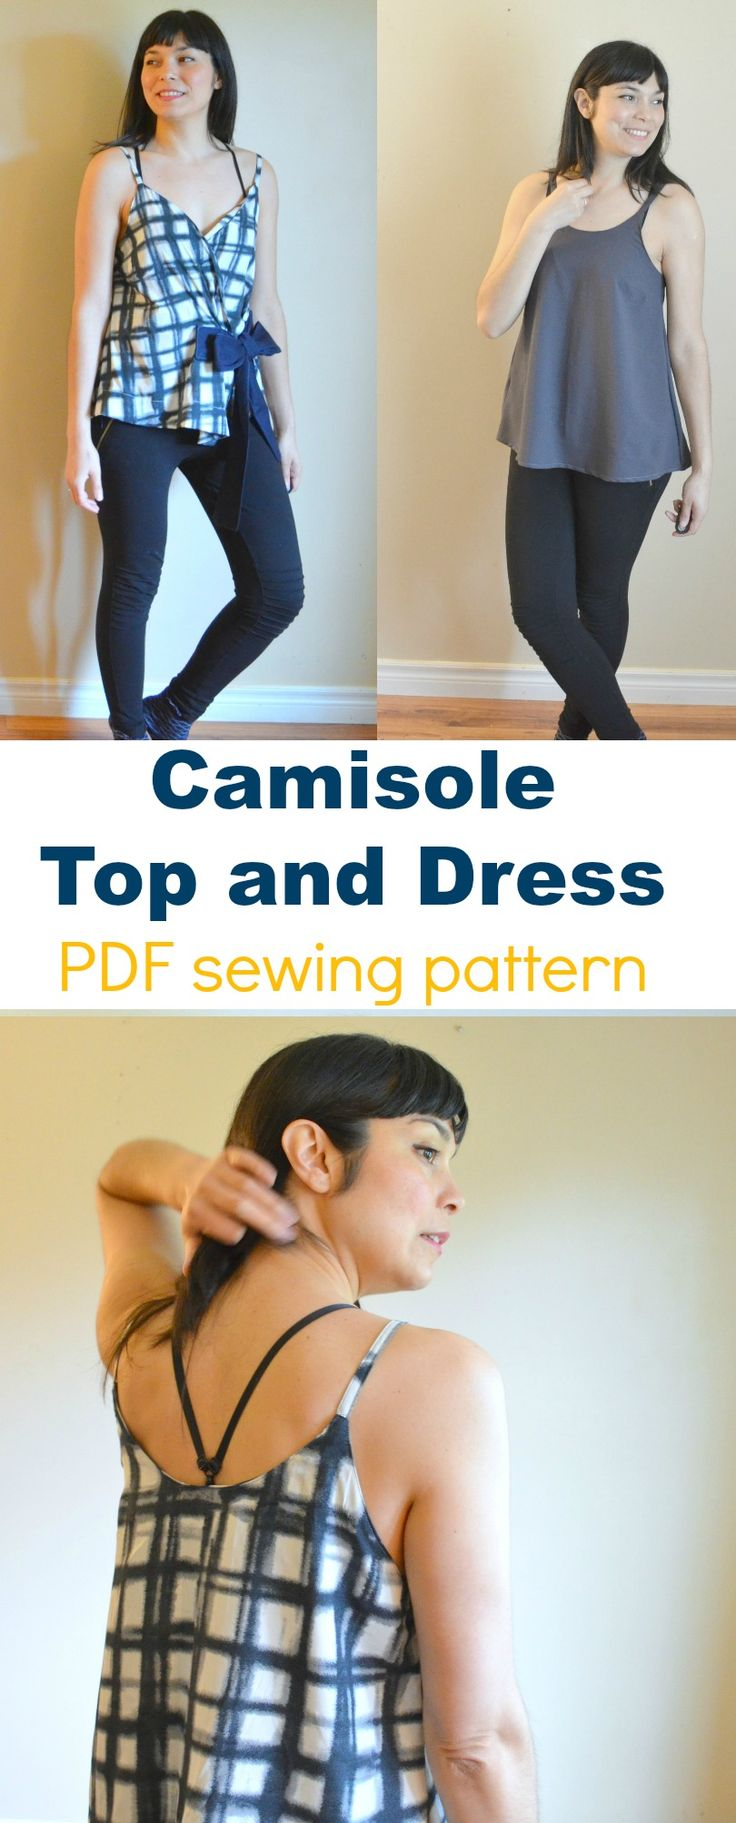 Introducing the Camisole Top and Dress PDF sewing pattern: Get access to this unique PDF sewing pattern and step by step sewing tutorial